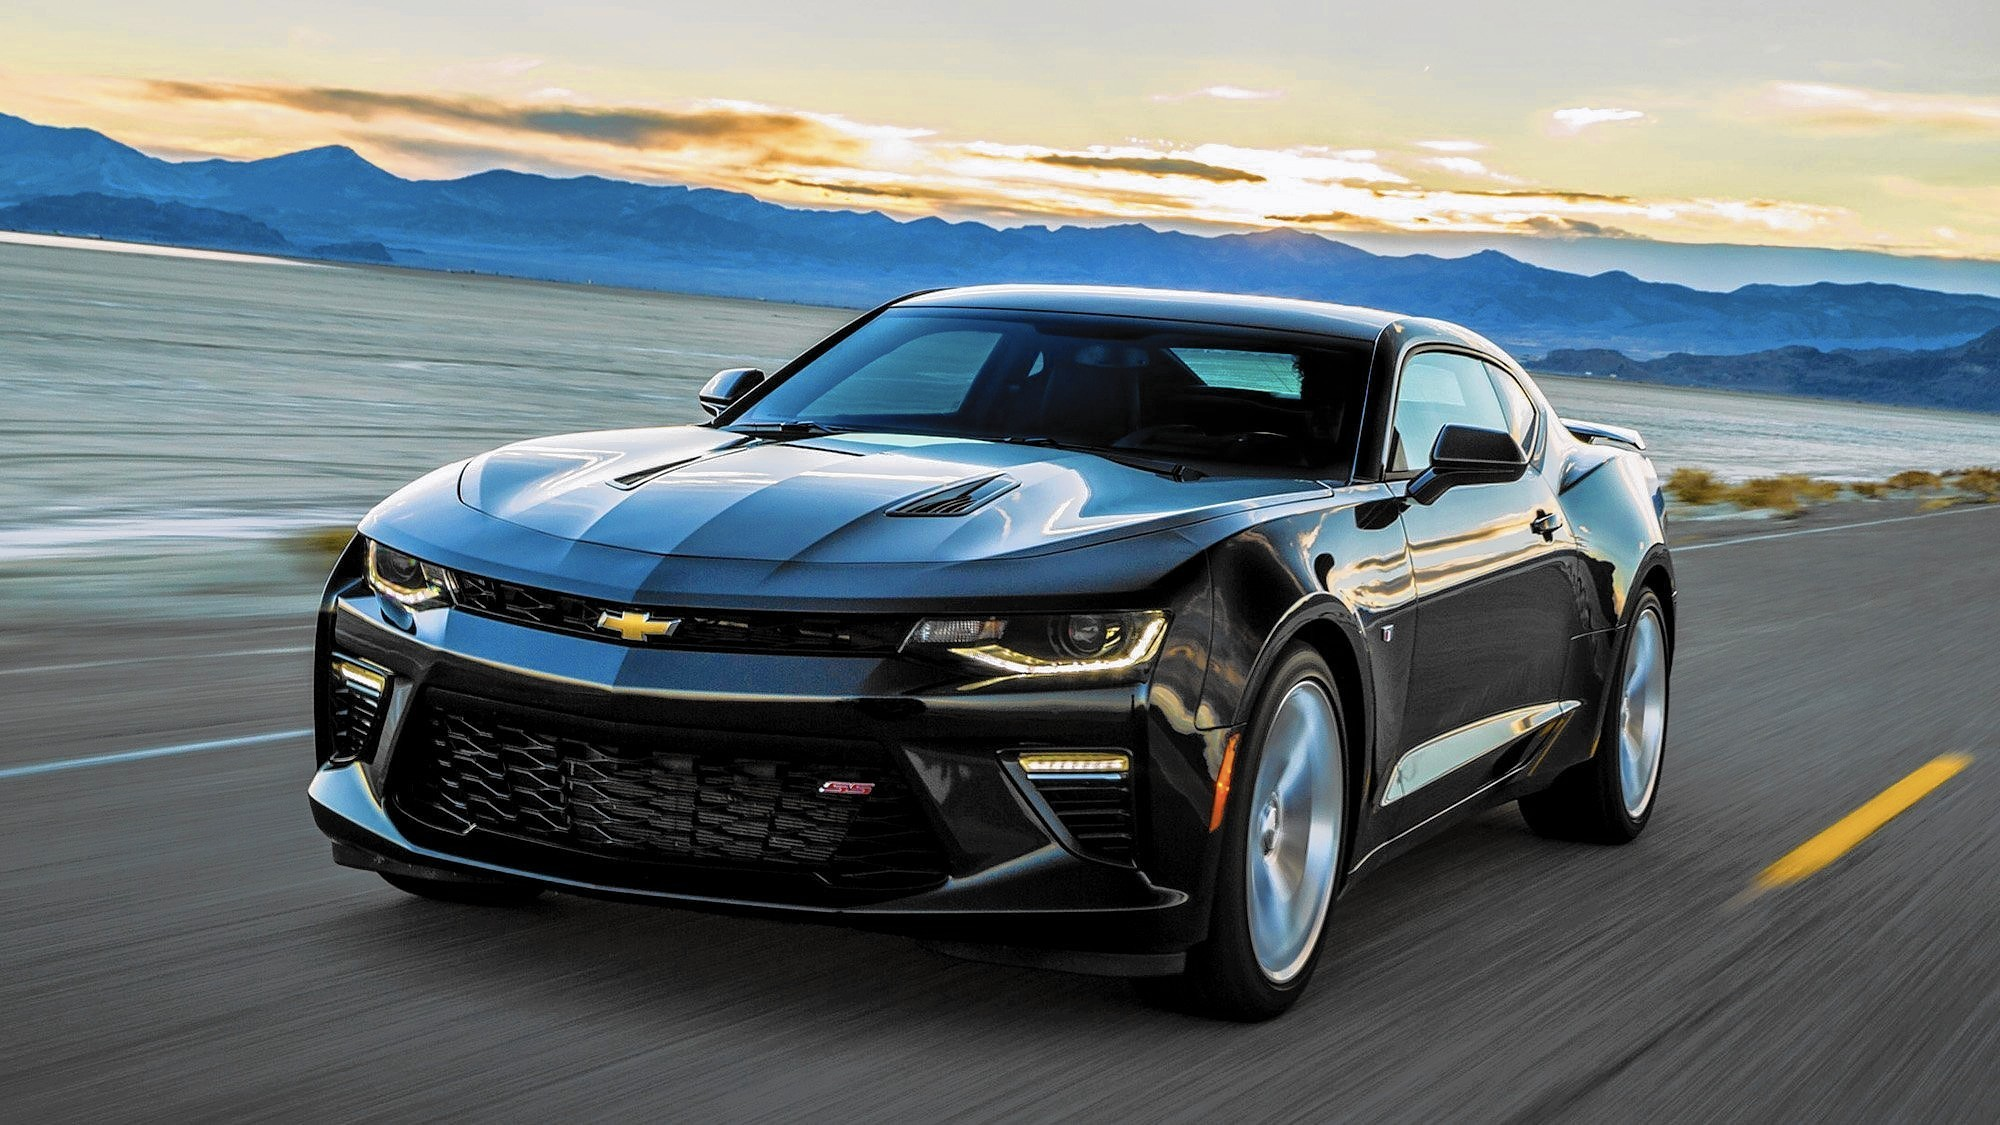 2016 chevrolet camaro turns up the heat during a drive to death valley la times. Black Bedroom Furniture Sets. Home Design Ideas